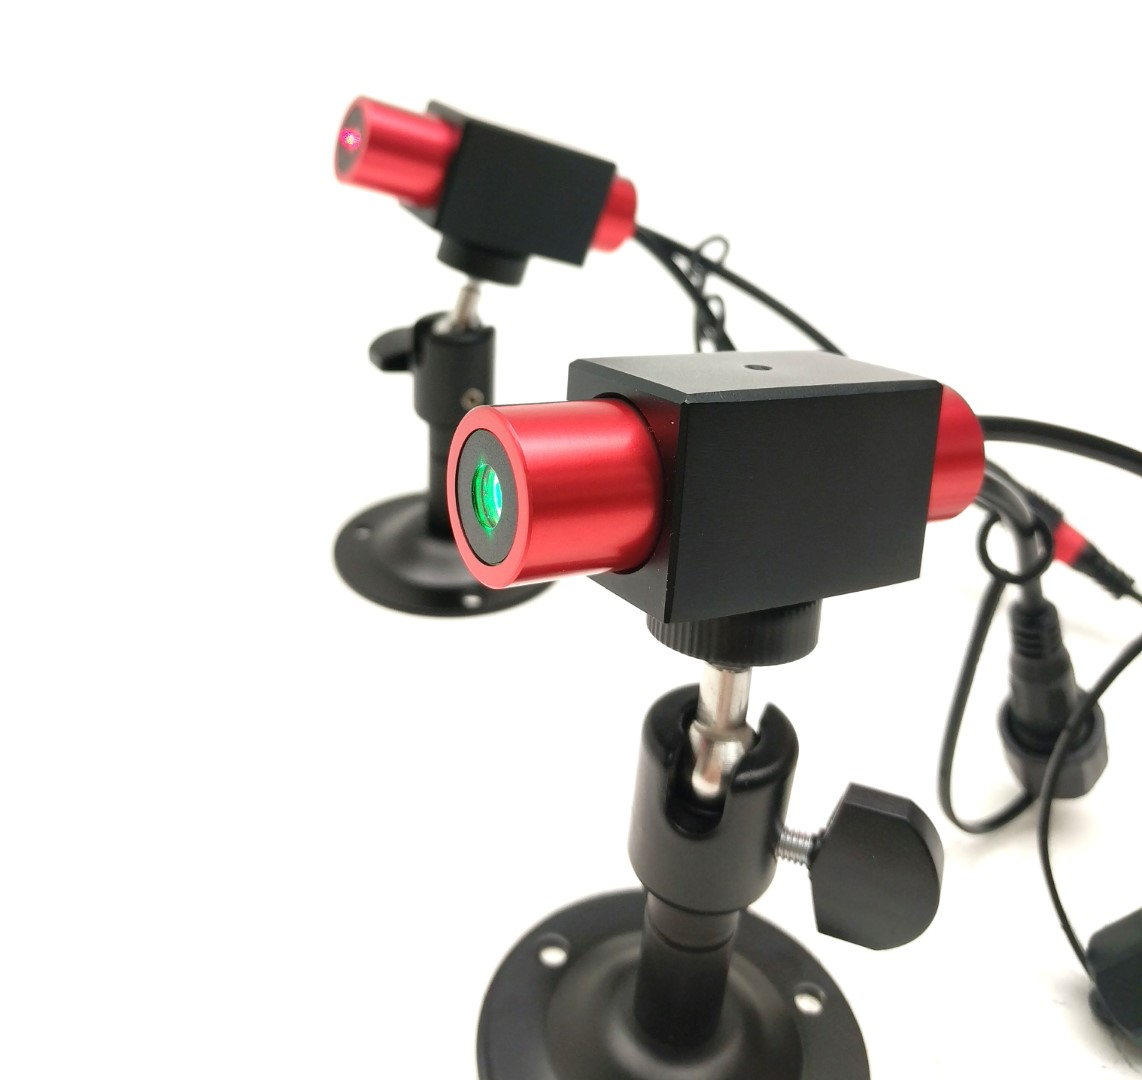 40 mW 635 nm Red Premium Structured Line No Central Dot Laser, 30° fan angle, adjustable focus, TTL+, Sealed IP67